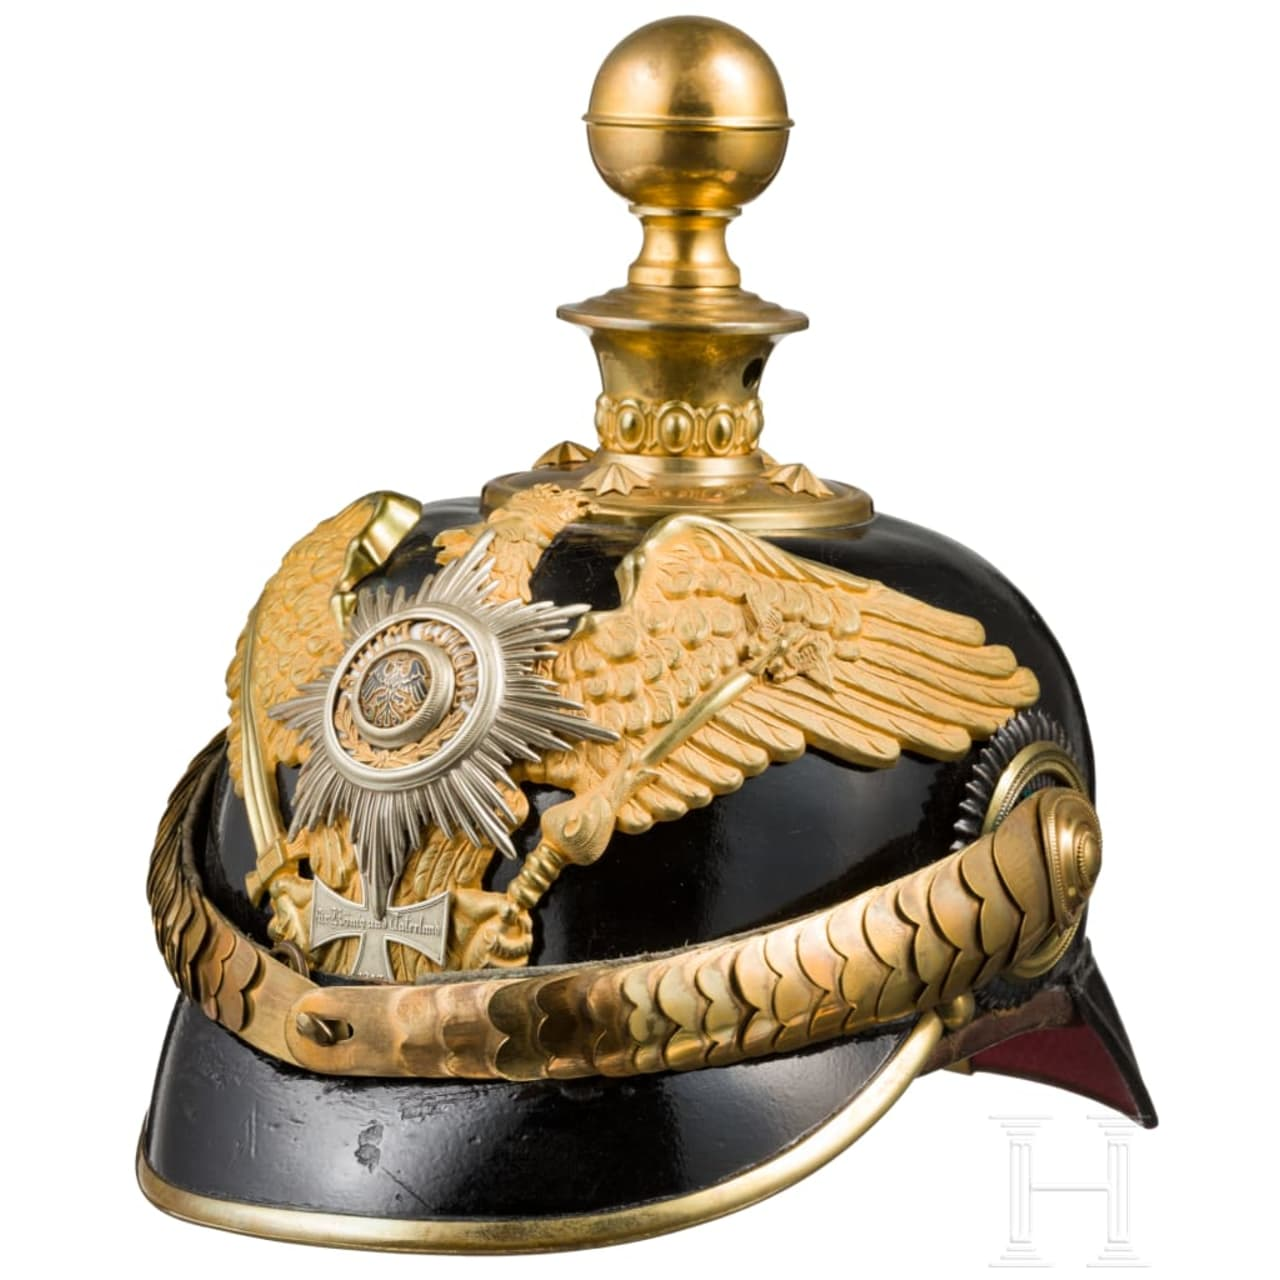 A helmet for reserve officers of the guard artillery, circa 1900